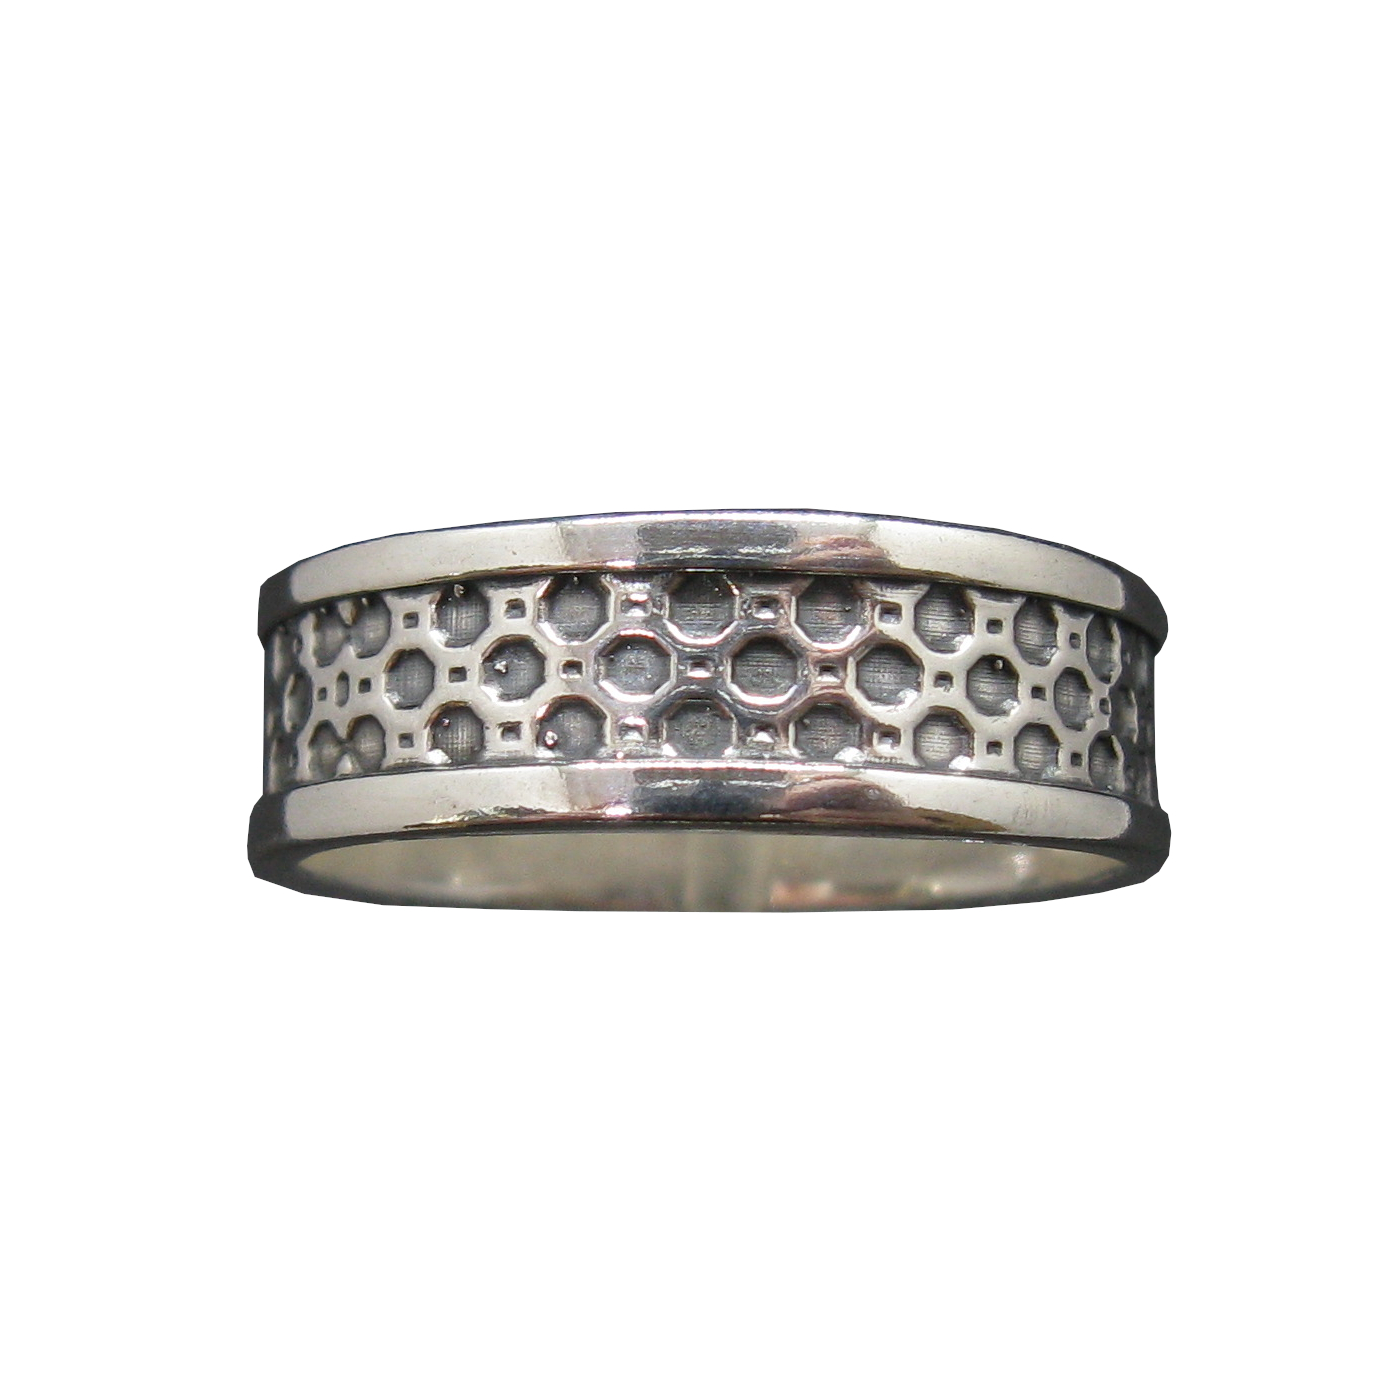 Silver ring - R002109